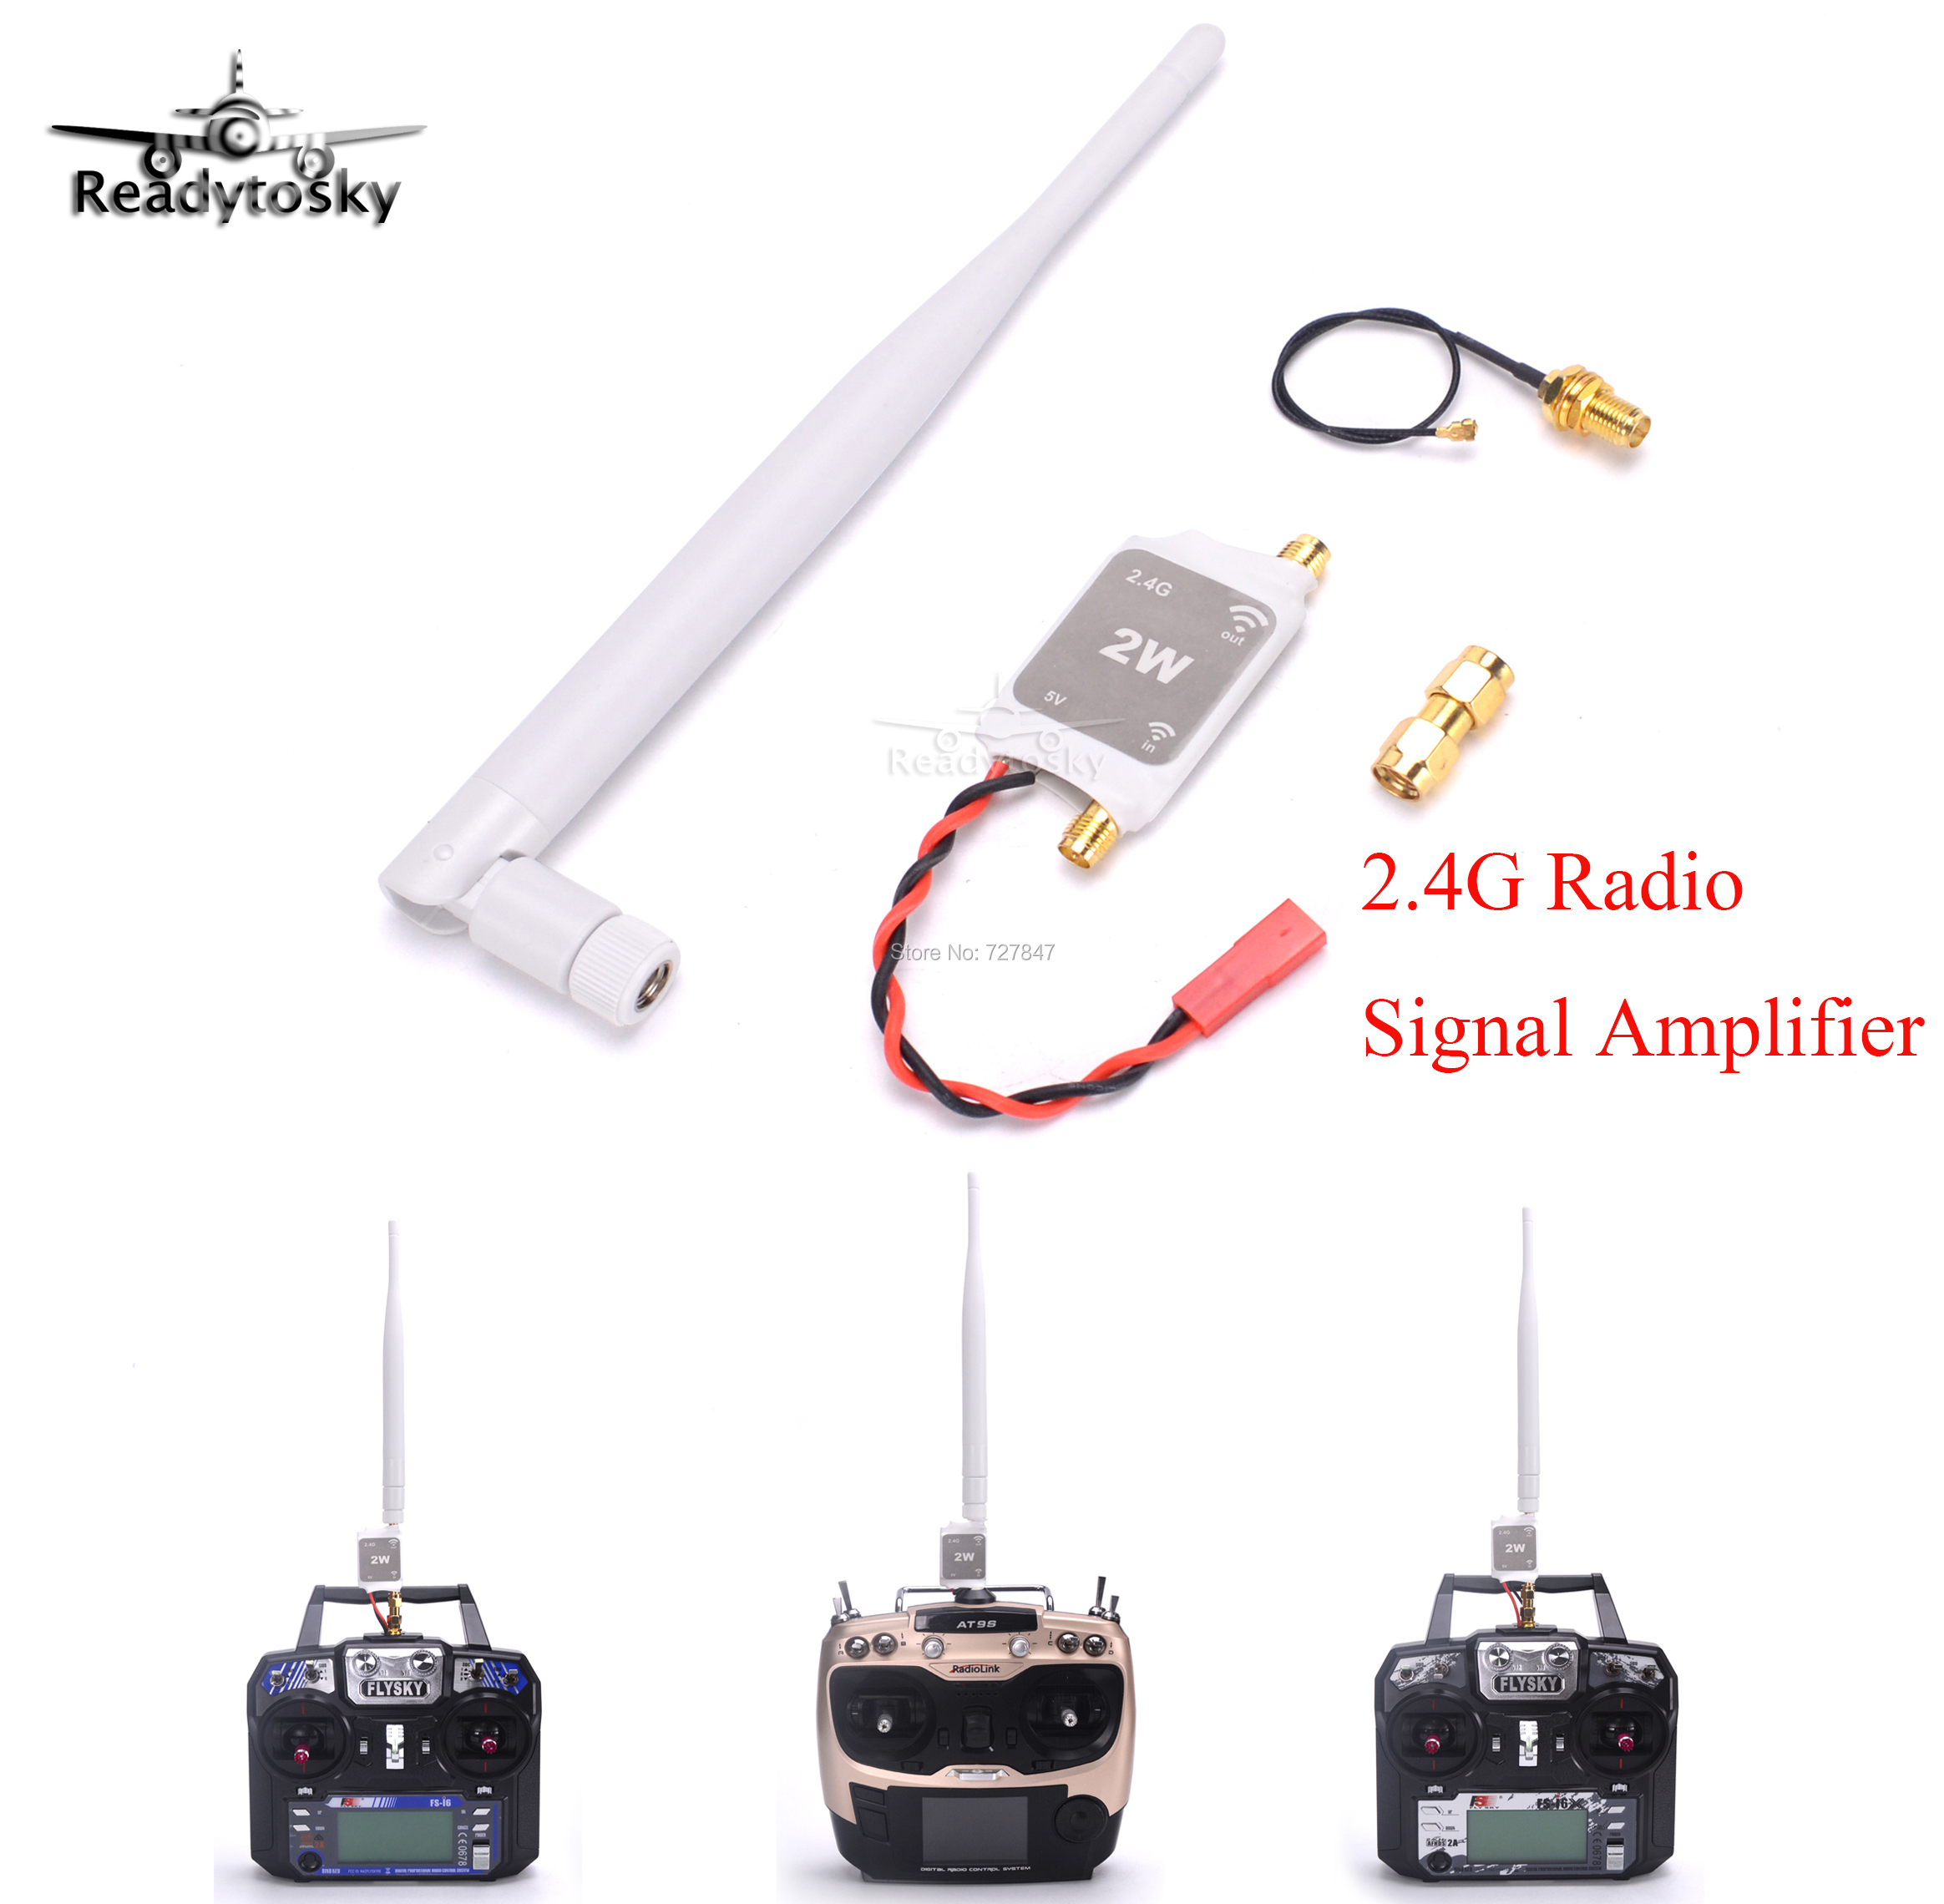 2.4G Radio Signal Amplifier Signal Booster For RC Quadcopter Multicopter Drone For Flysky Radiolink 2.4G Remote Control